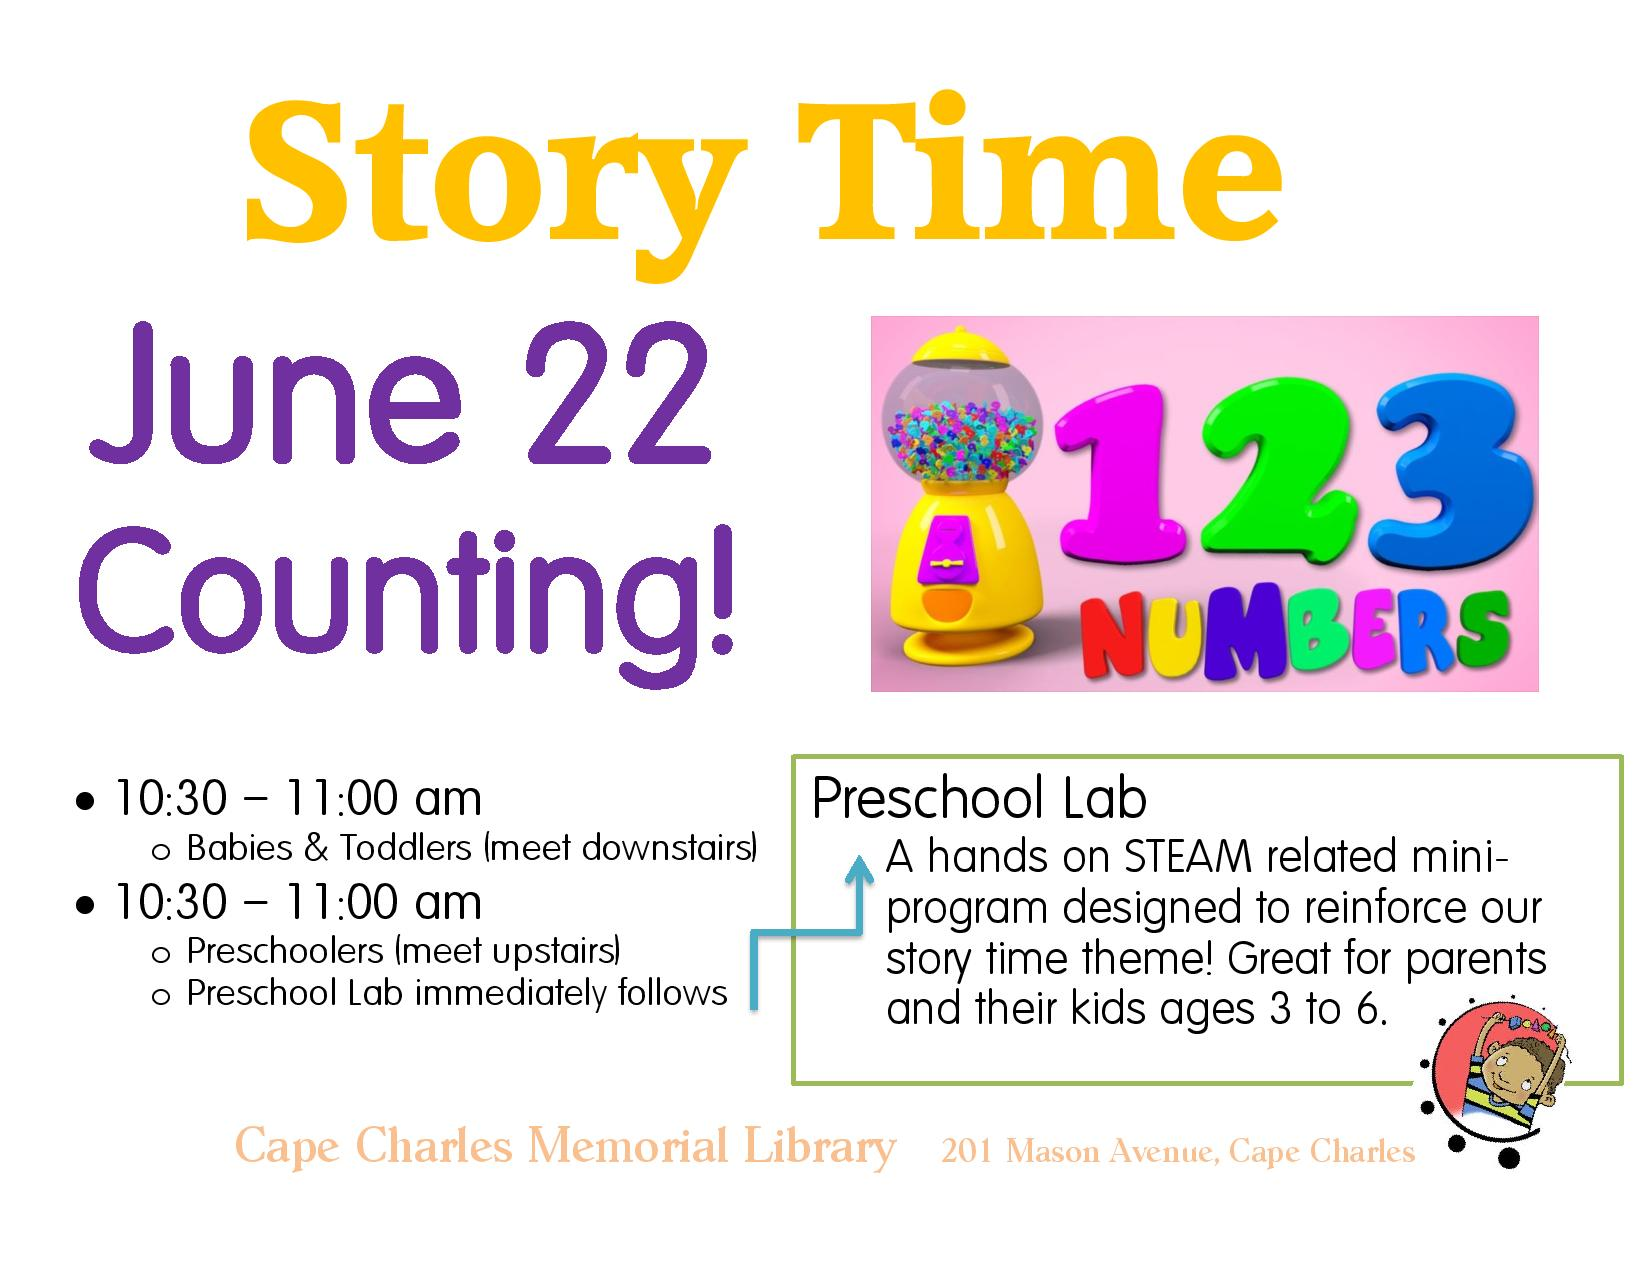 Preschool Lab and Story Time - Counting